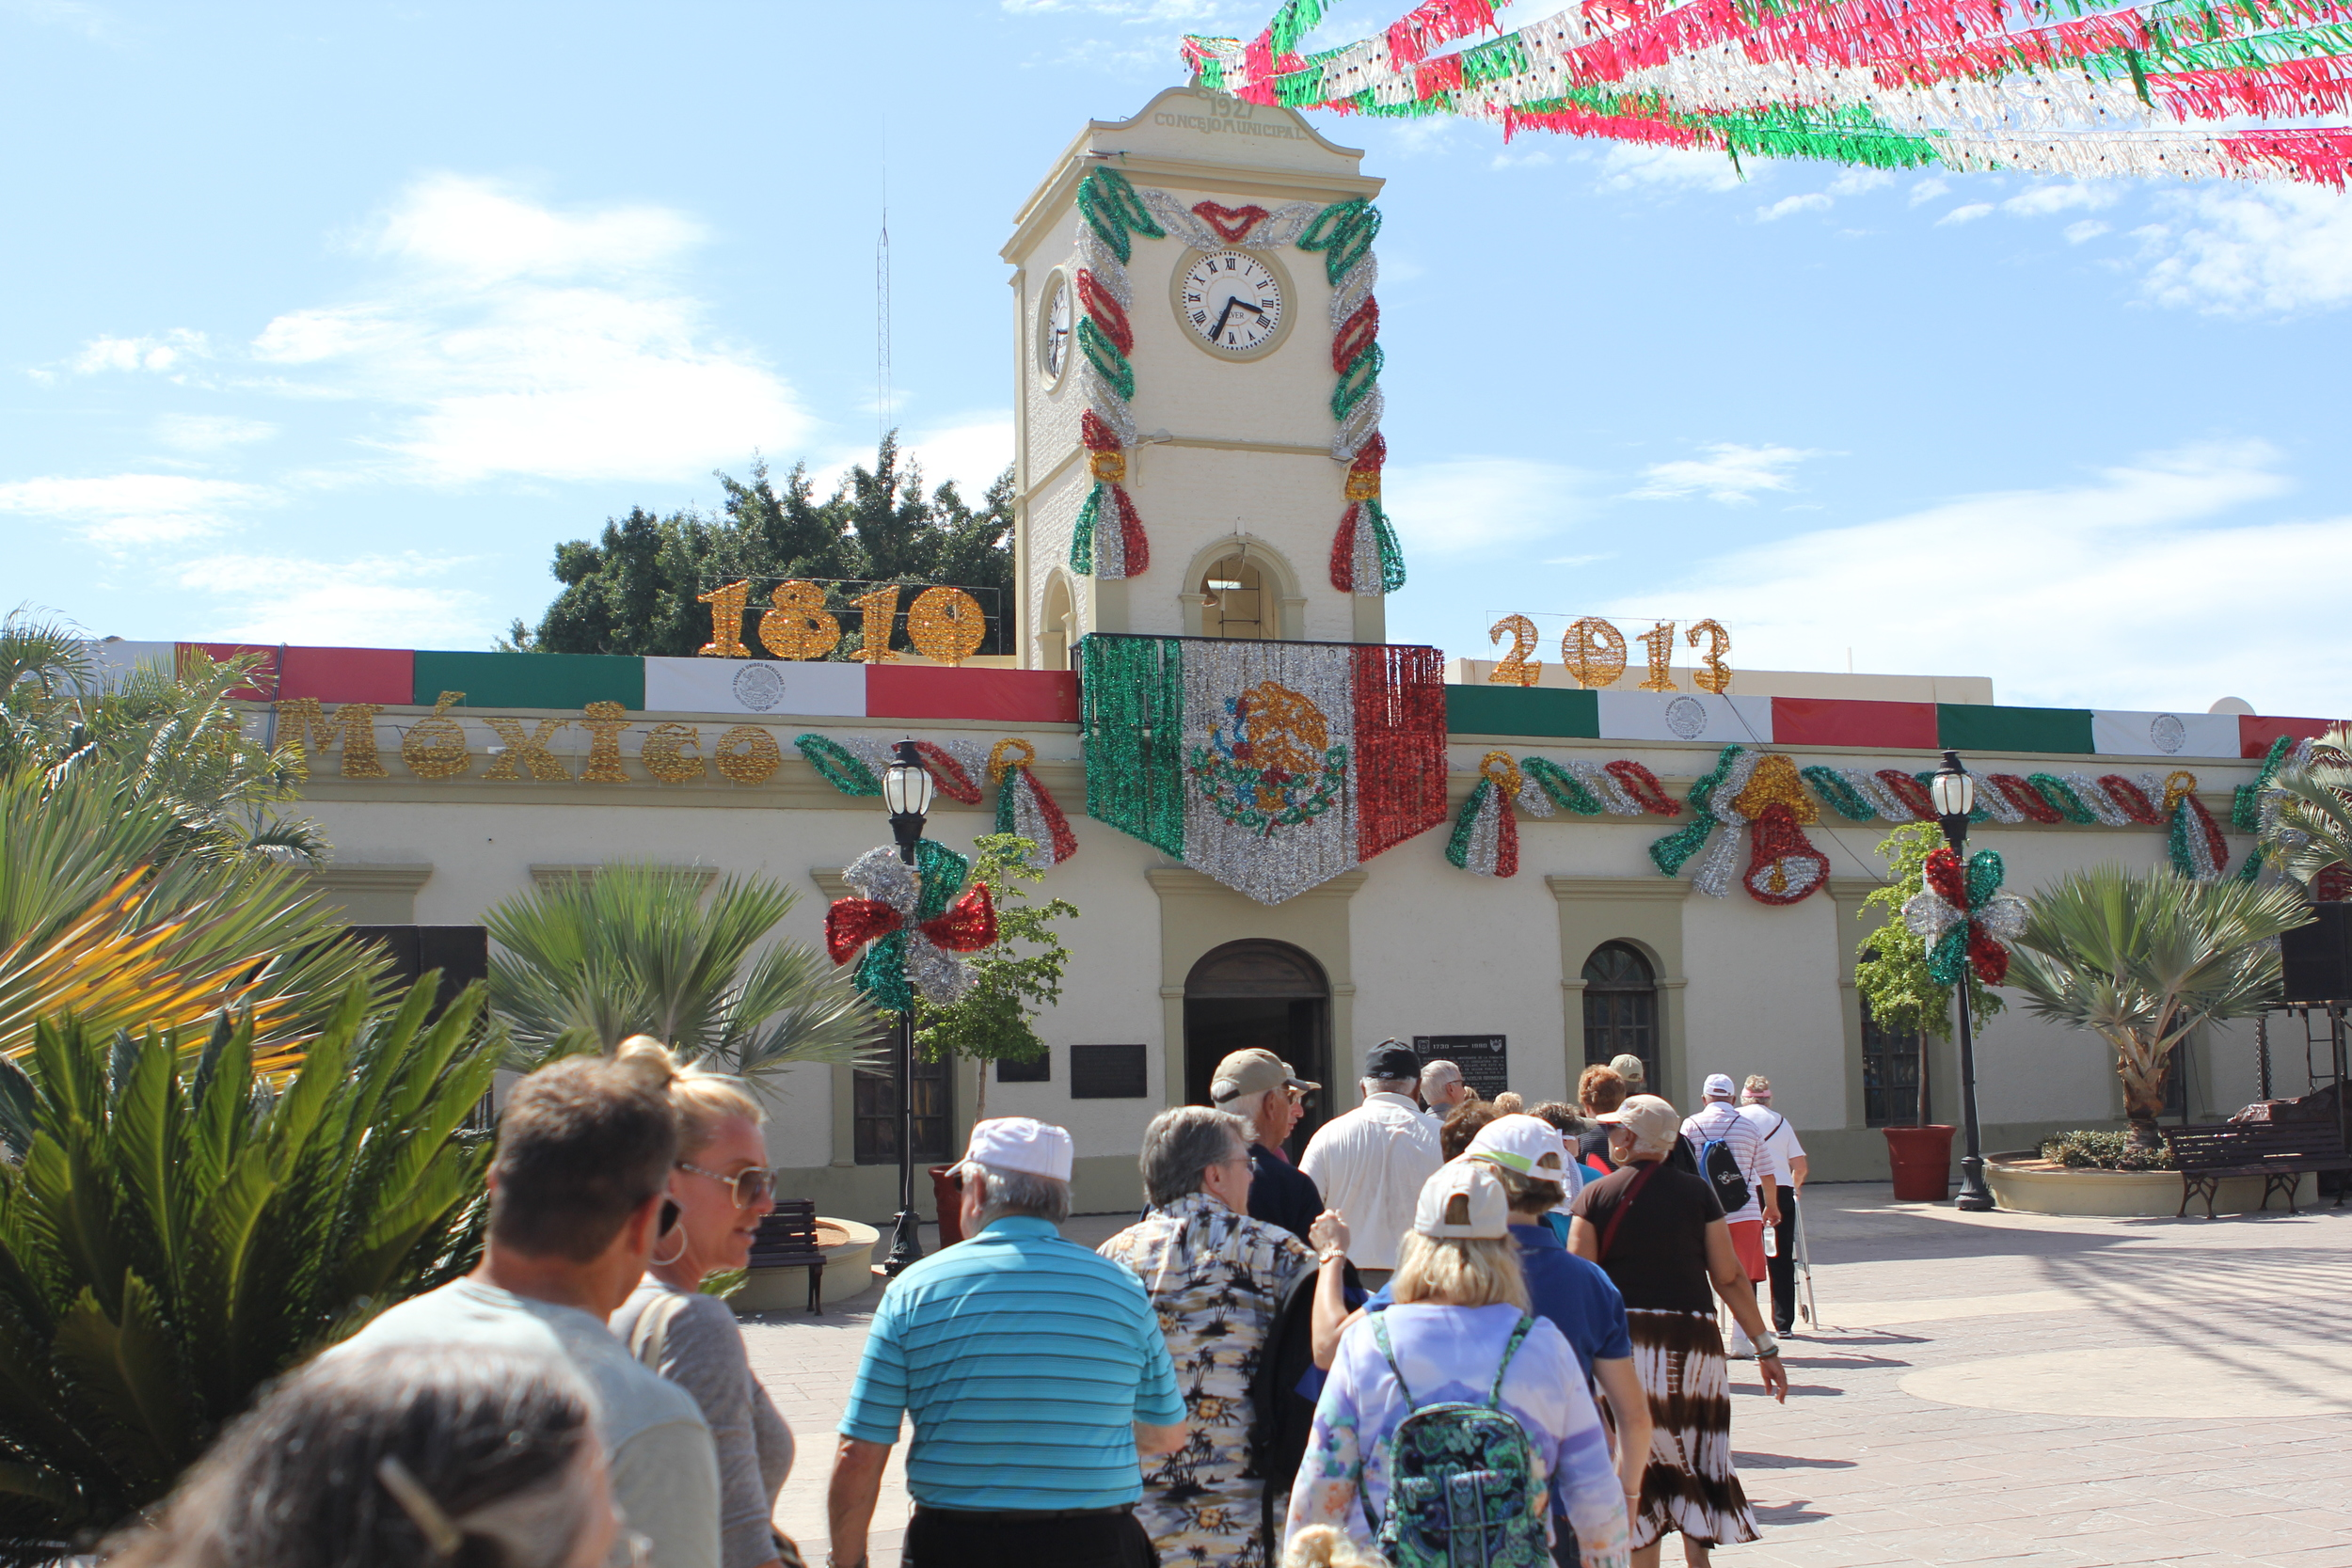 The court house in Cabo San Juan